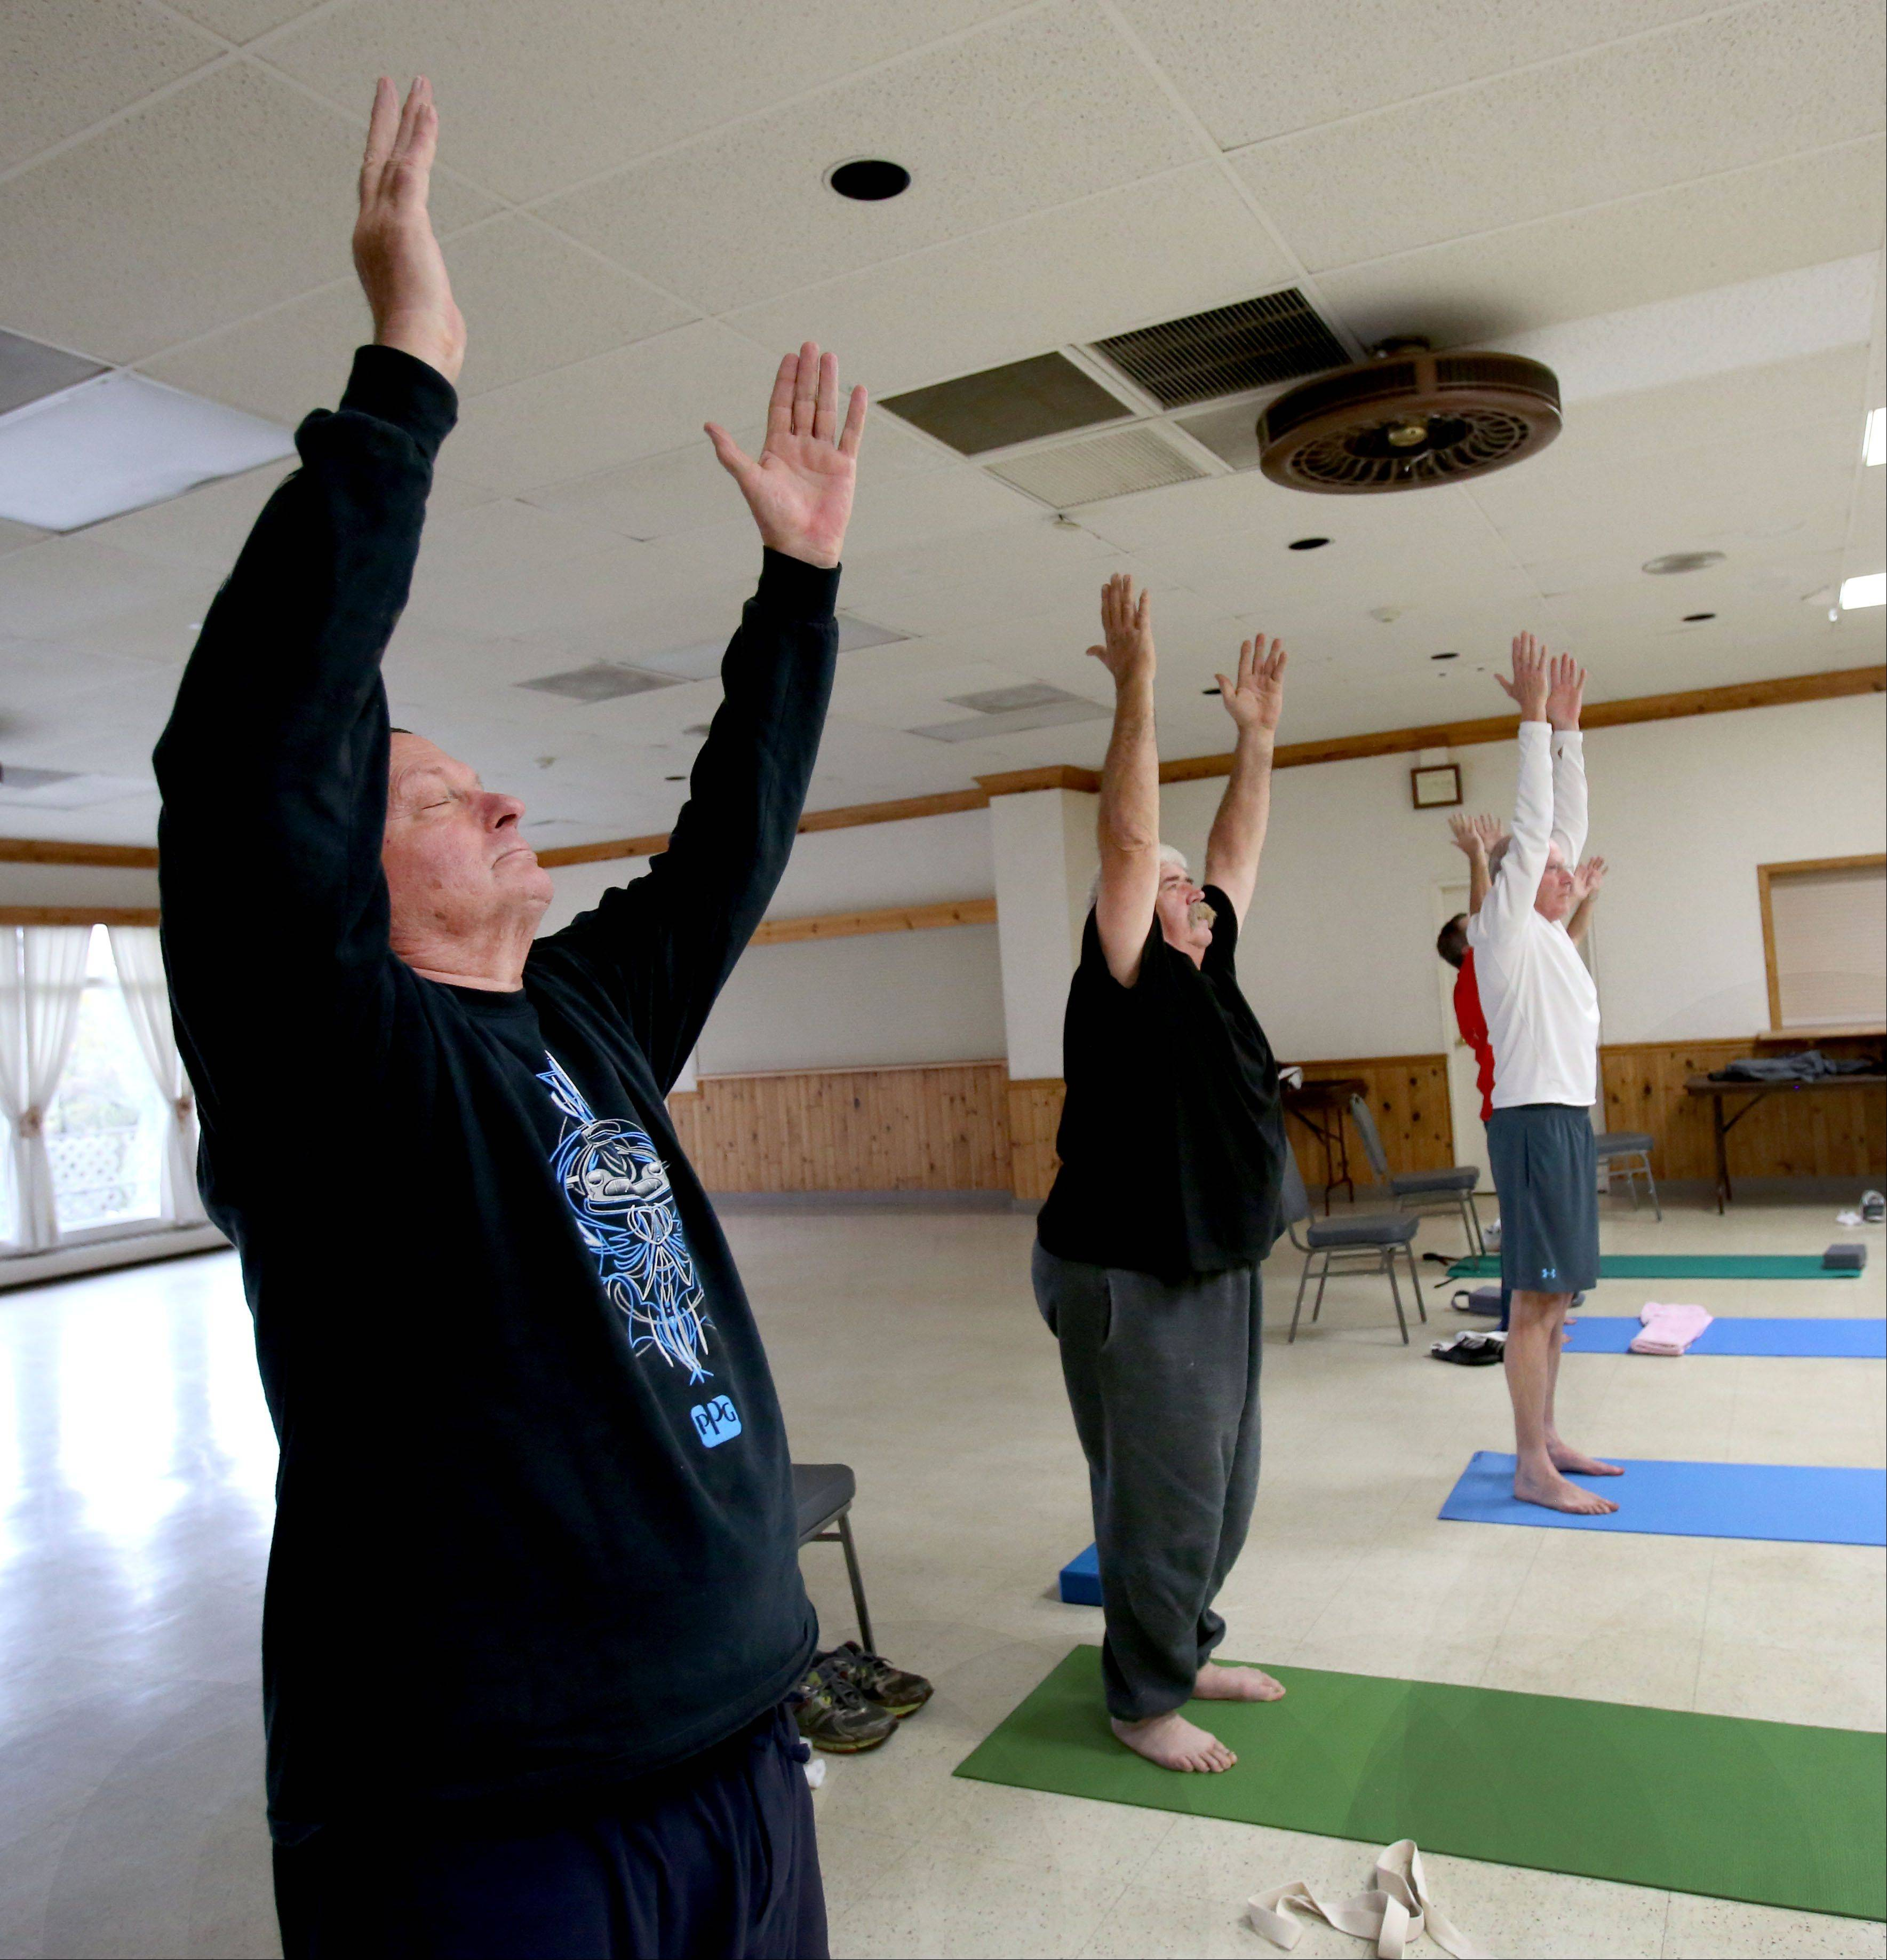 Mike Barbour of Naperville completes a sun salutation during a free yoga class for veterans at Judd Kendall VFW Post 3873 in Naperville. Barbour, a Vietnam veteran who said he suffers from post-traumatic stress disorder, said he helped volunteer instructor Dana Fish start the classes because he believes medications may not be the best way to treat the mental and physical problems veterans face after war.